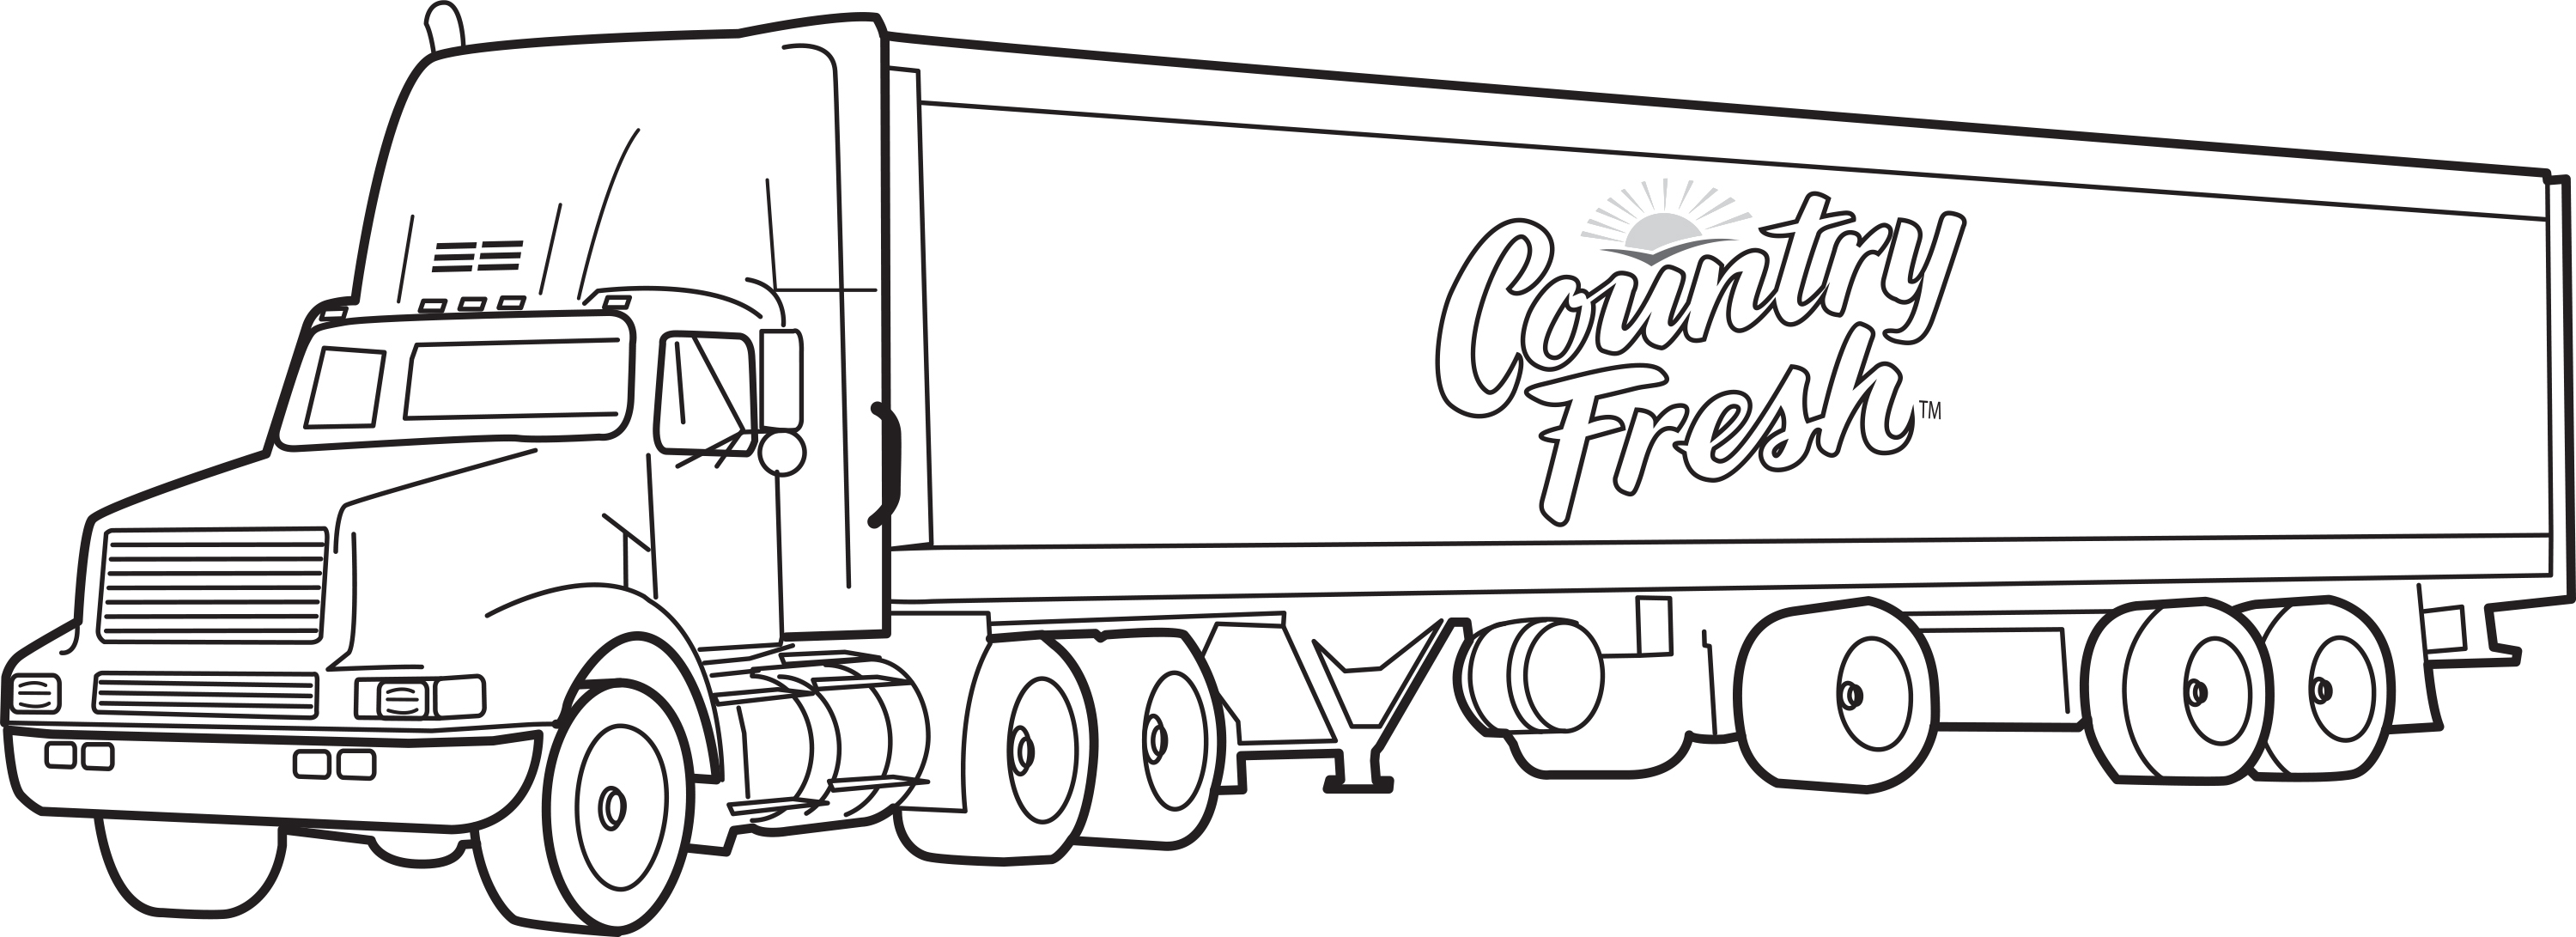 Truck Coloring Pages Gallery 10c - To print for your project